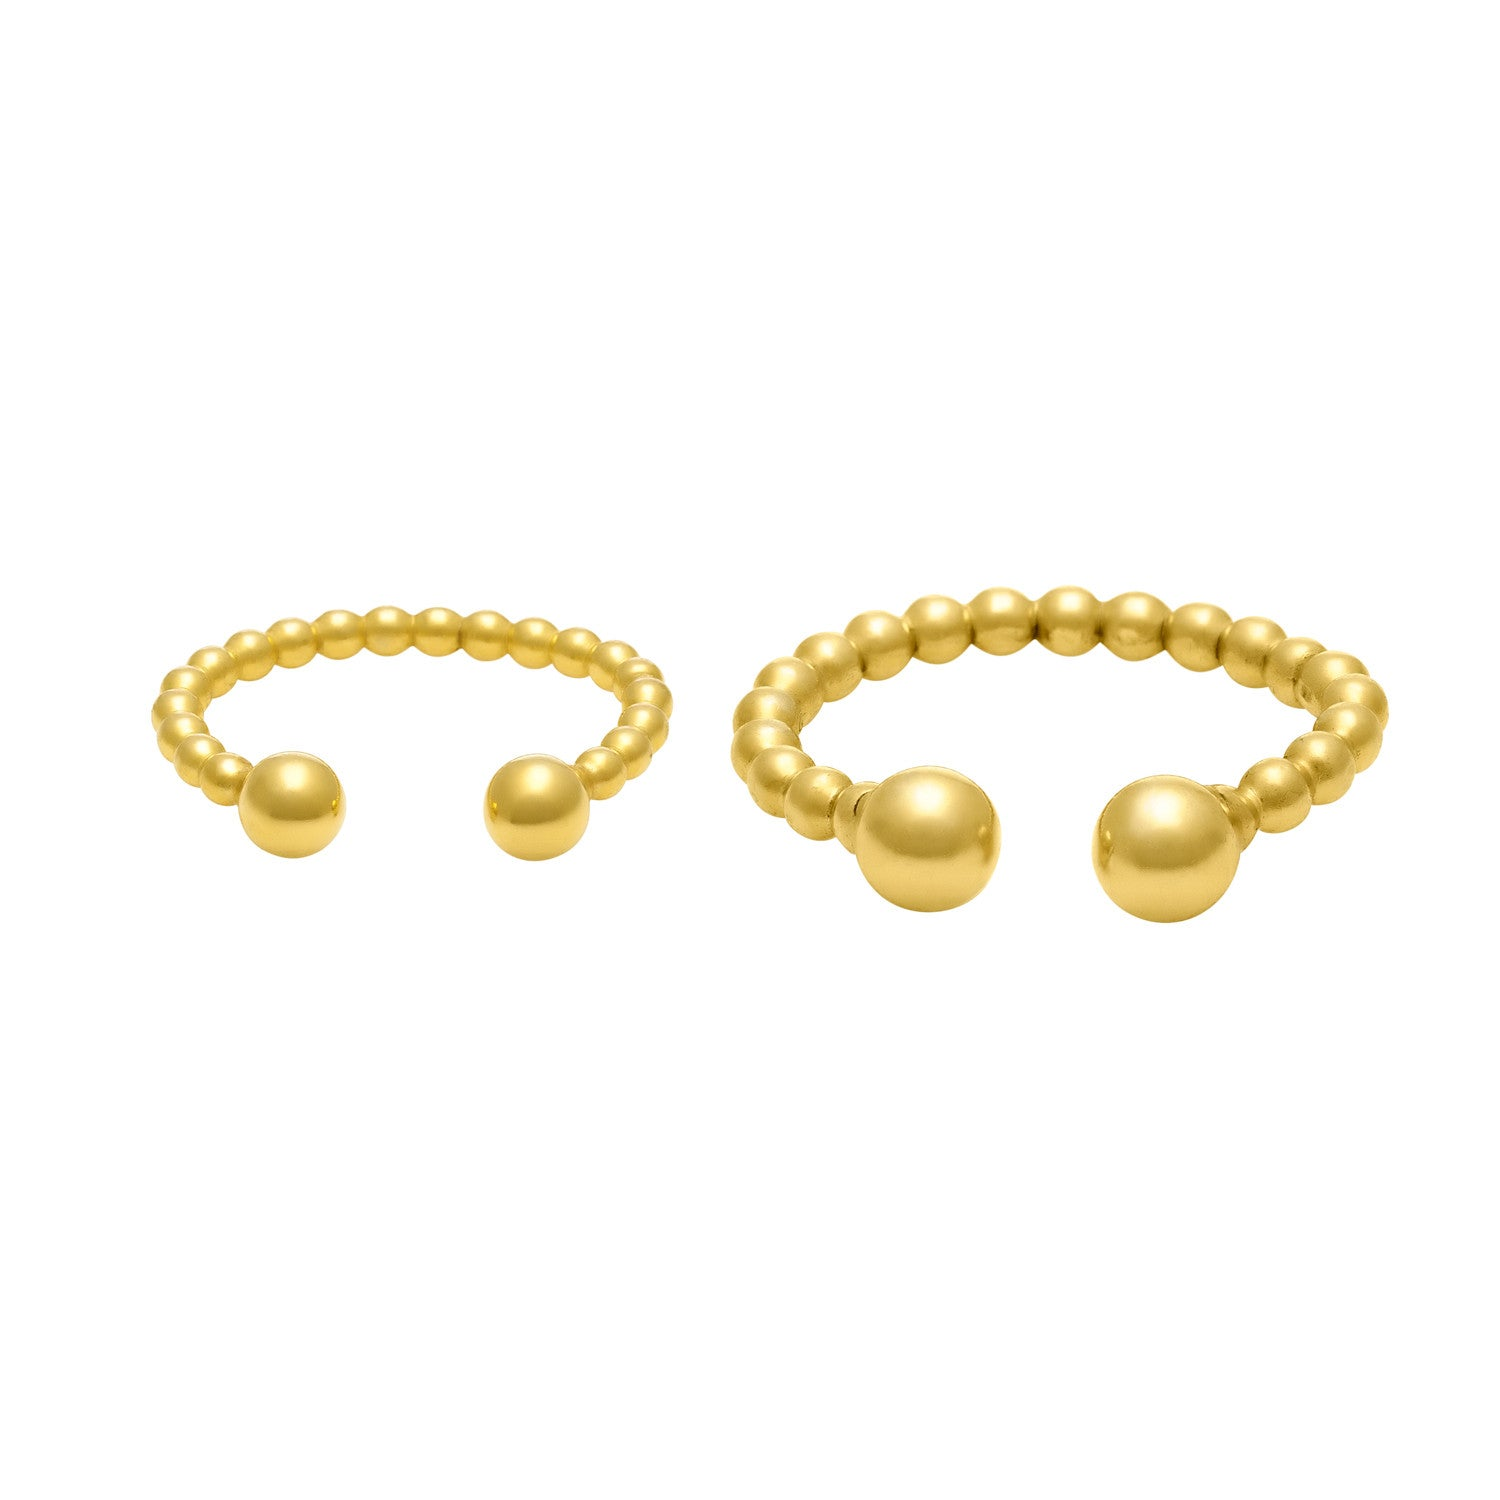 Coco\'s Liberty: Septum clip i   Jewelry -  Hiphunters Shop